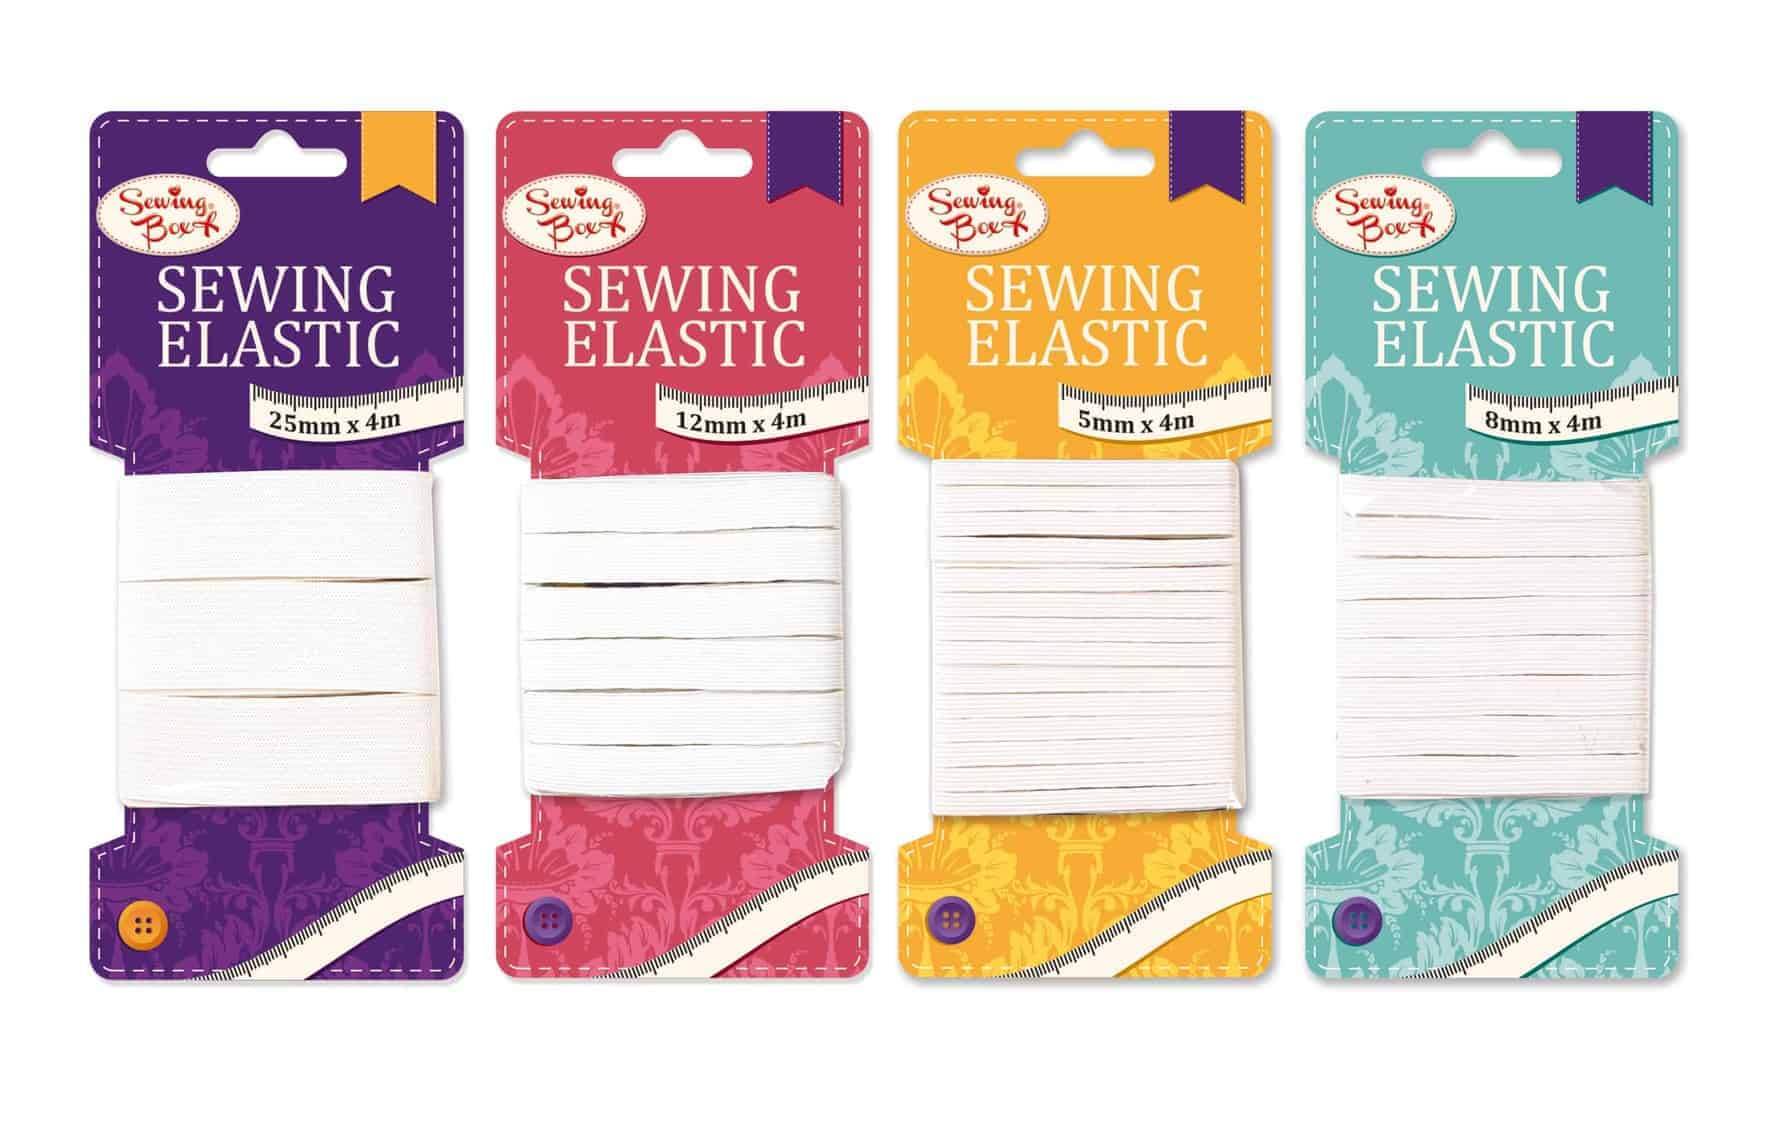 Sewing Box Assorted x 4m Sewing Elastic